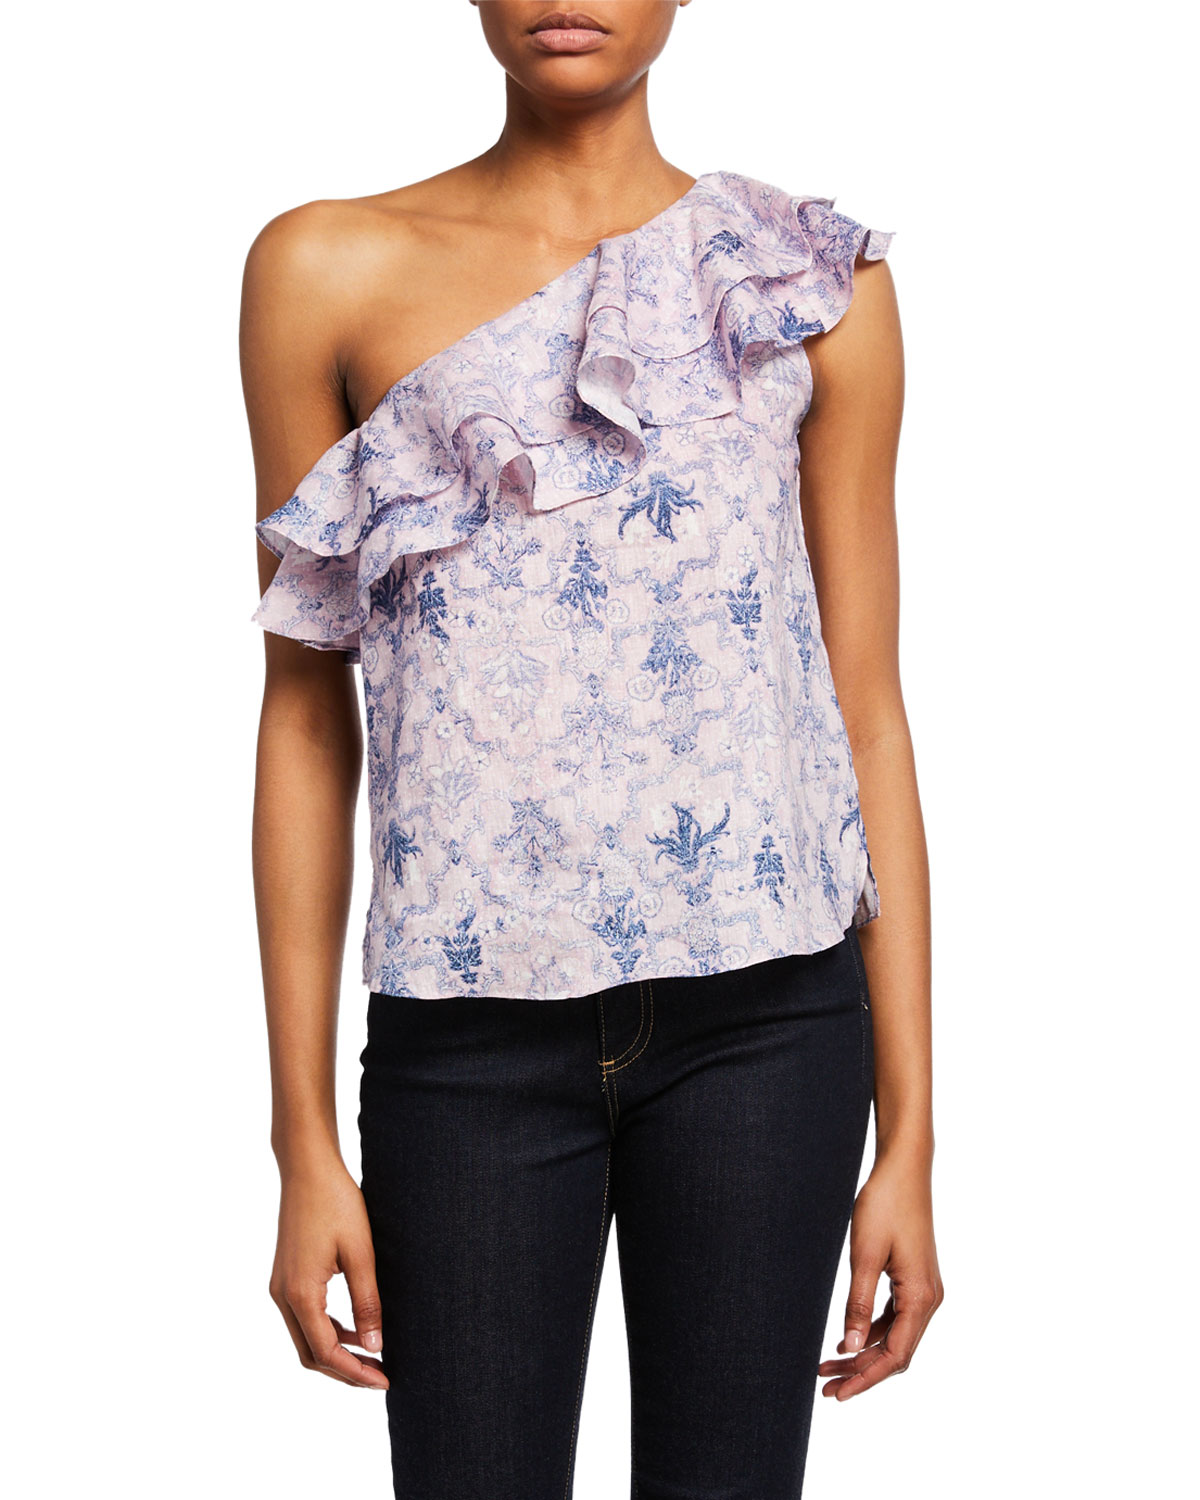 Etoile Isabel Marant Tops THOMY ONE-SHOULDER PATTERNED RUFFLE TOP